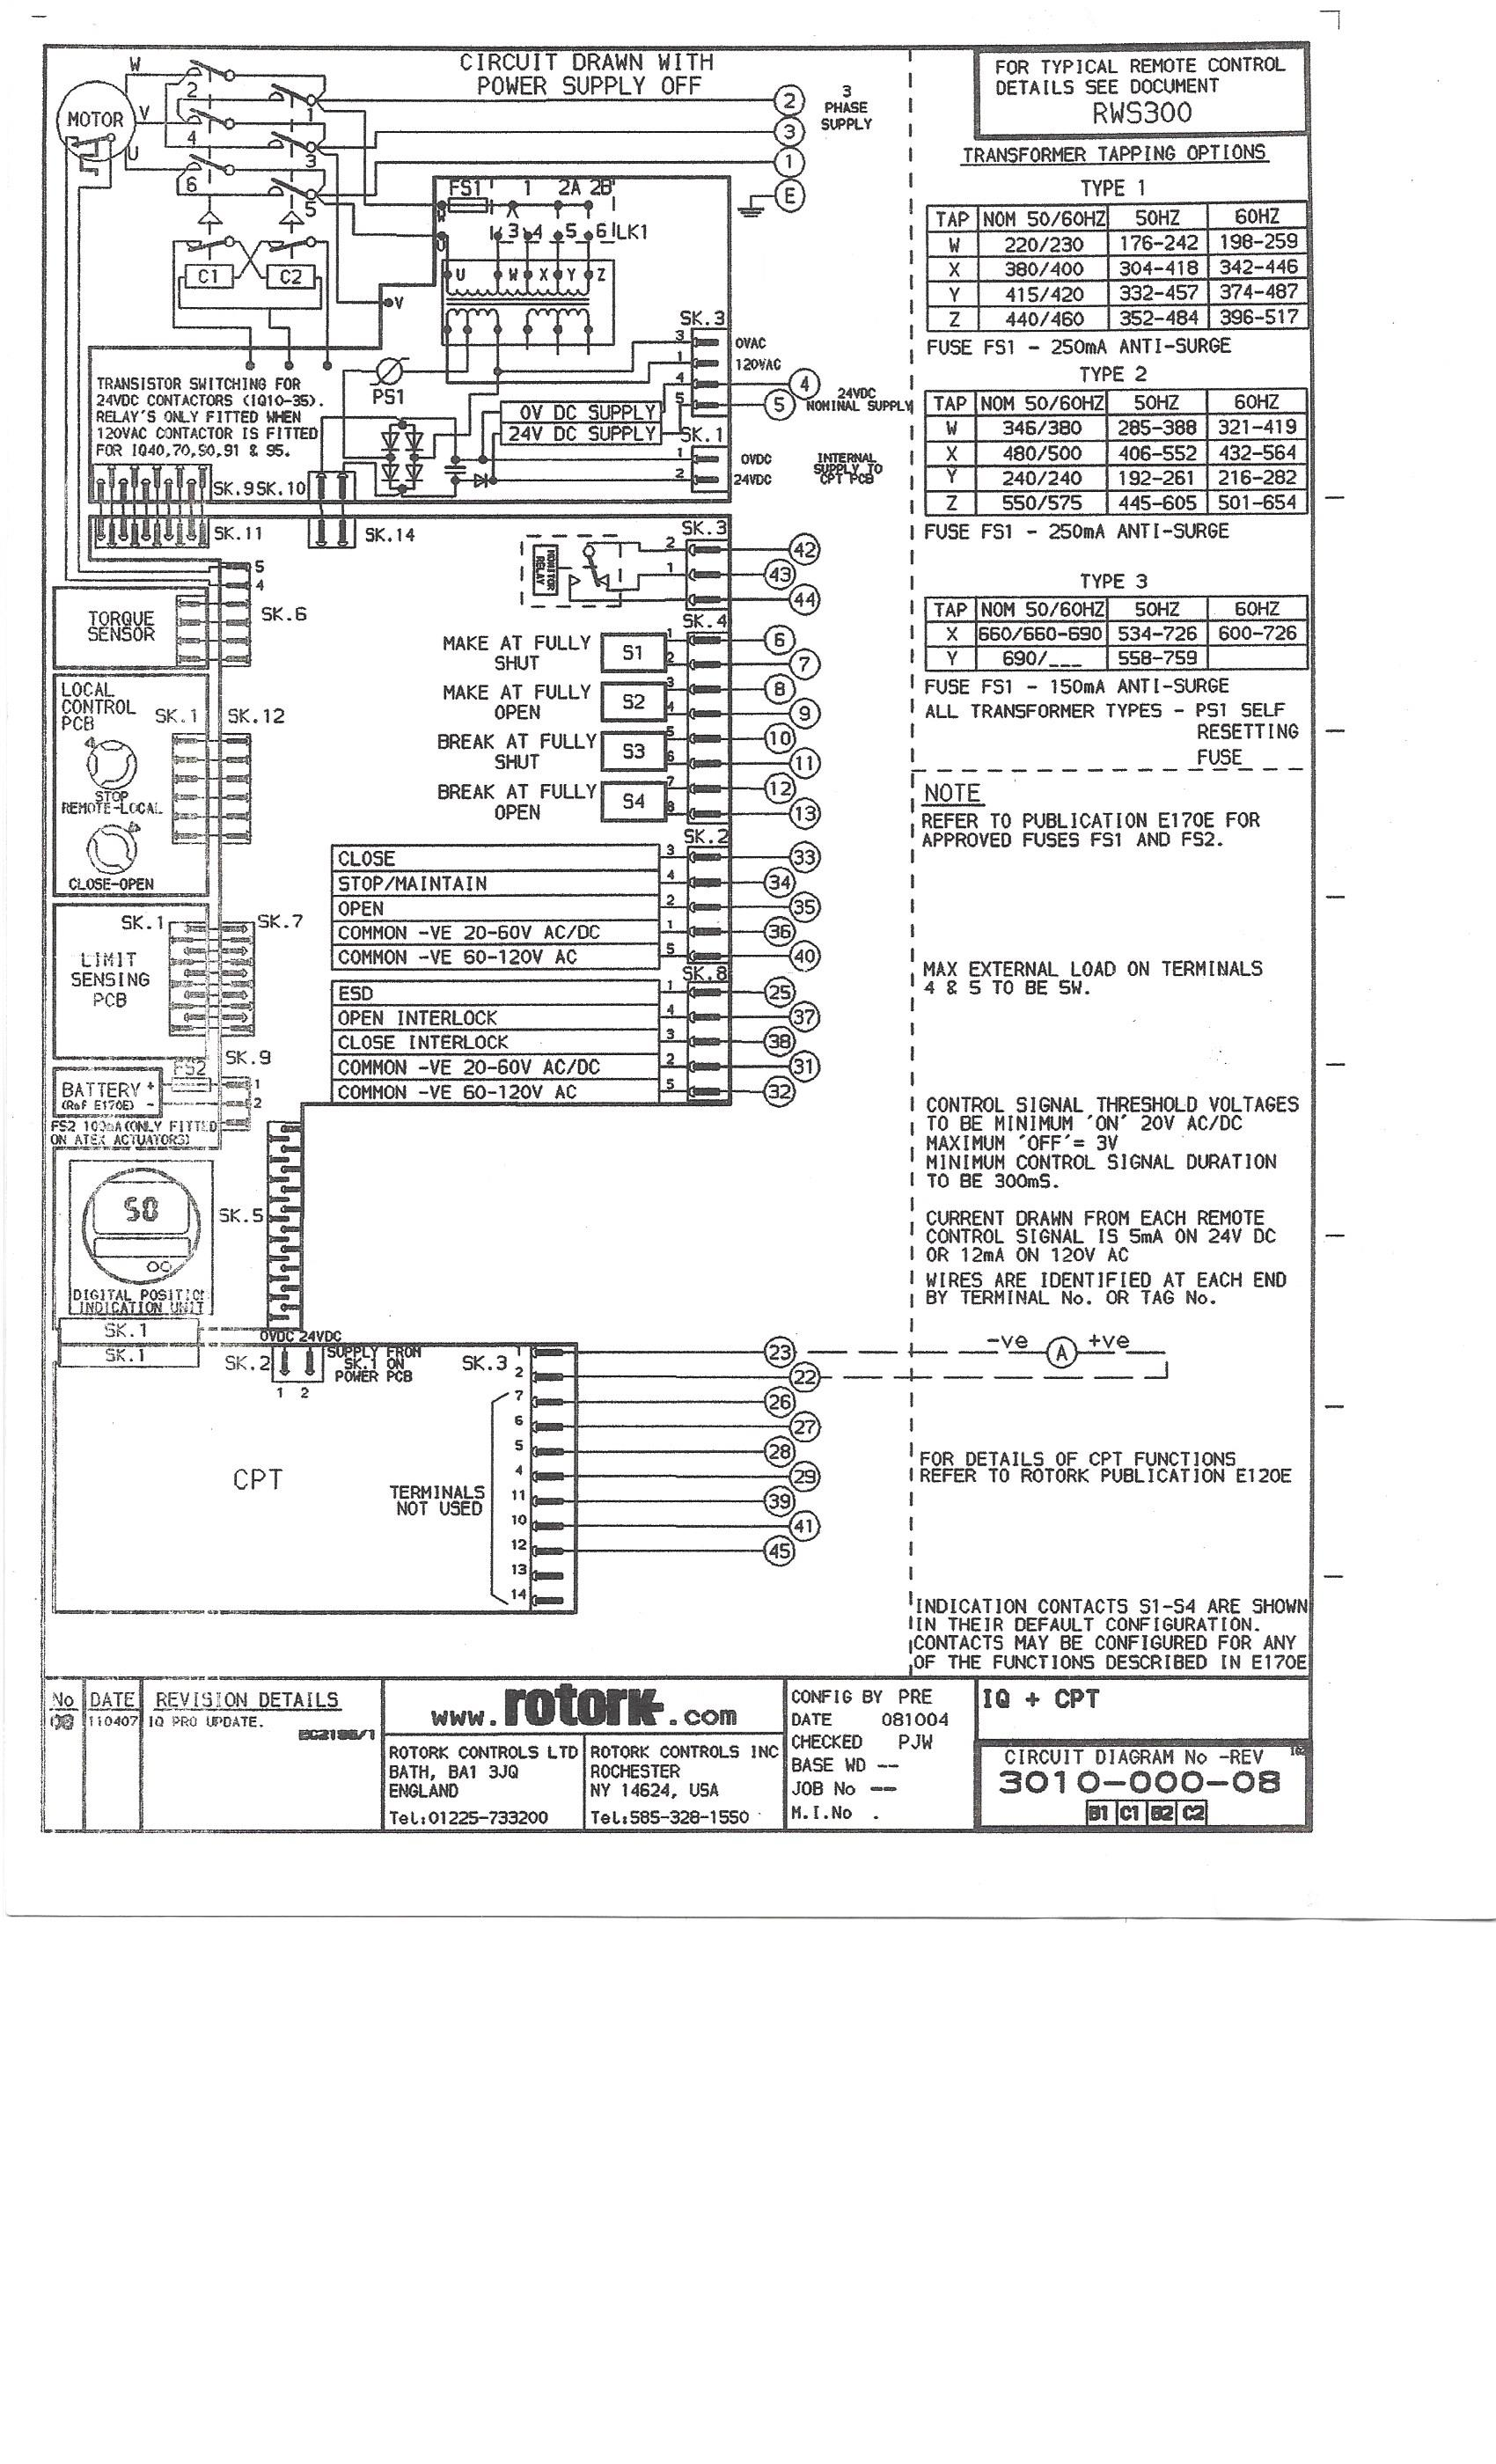 Qx Wiring Diagram - Schematics Wiring Diagrams •